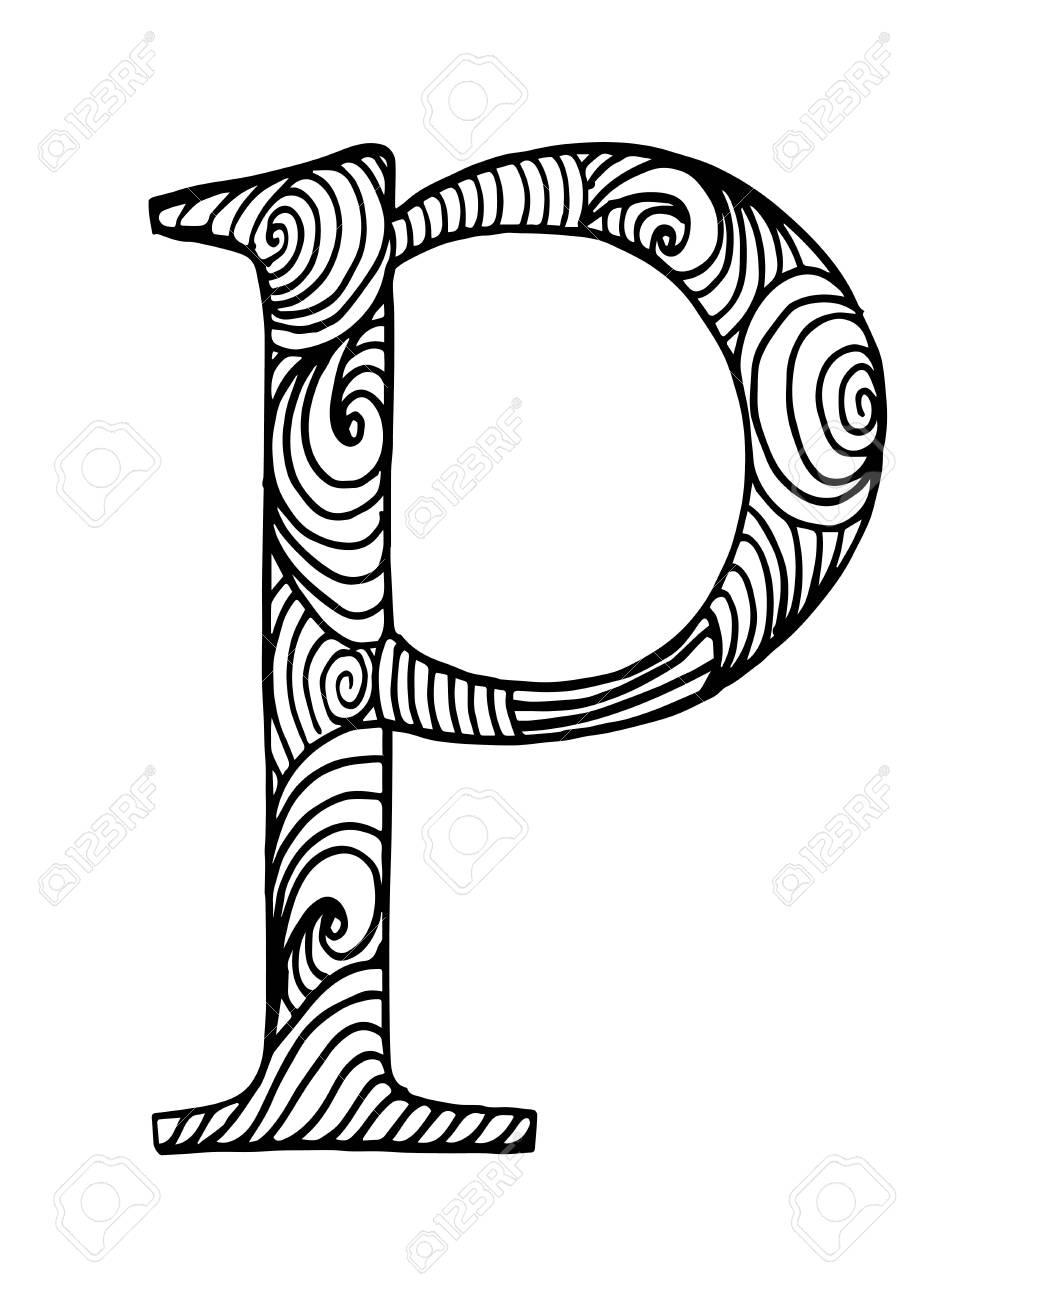 1038x1300 Zentangle Stylized Alphabet. Letter P In Doodle Style. Hand Drawn